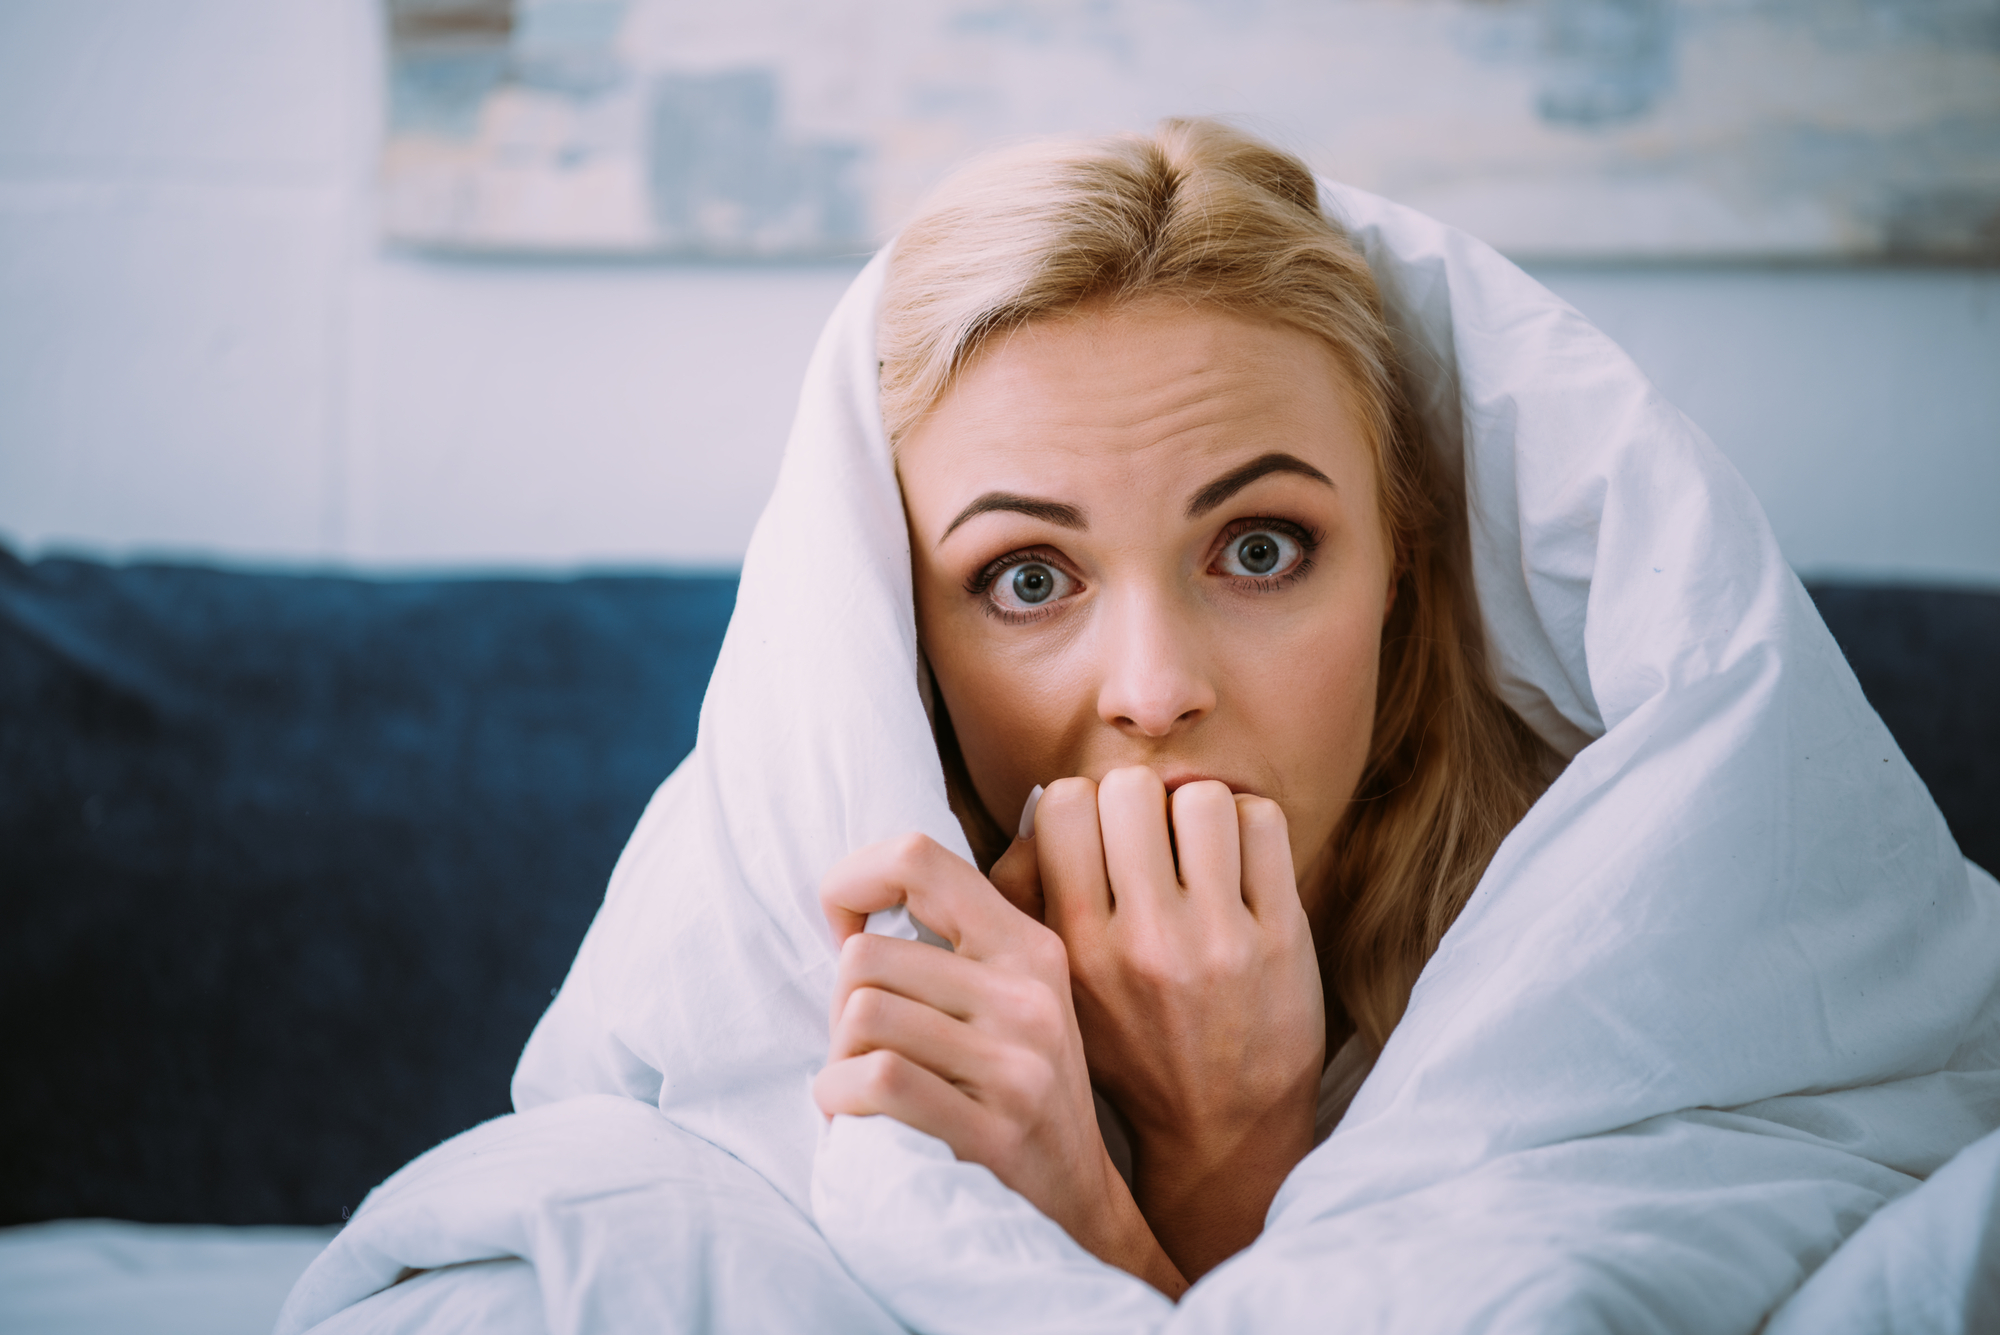 Fearful woman peaking out of a blanket, knuckles to her mouth